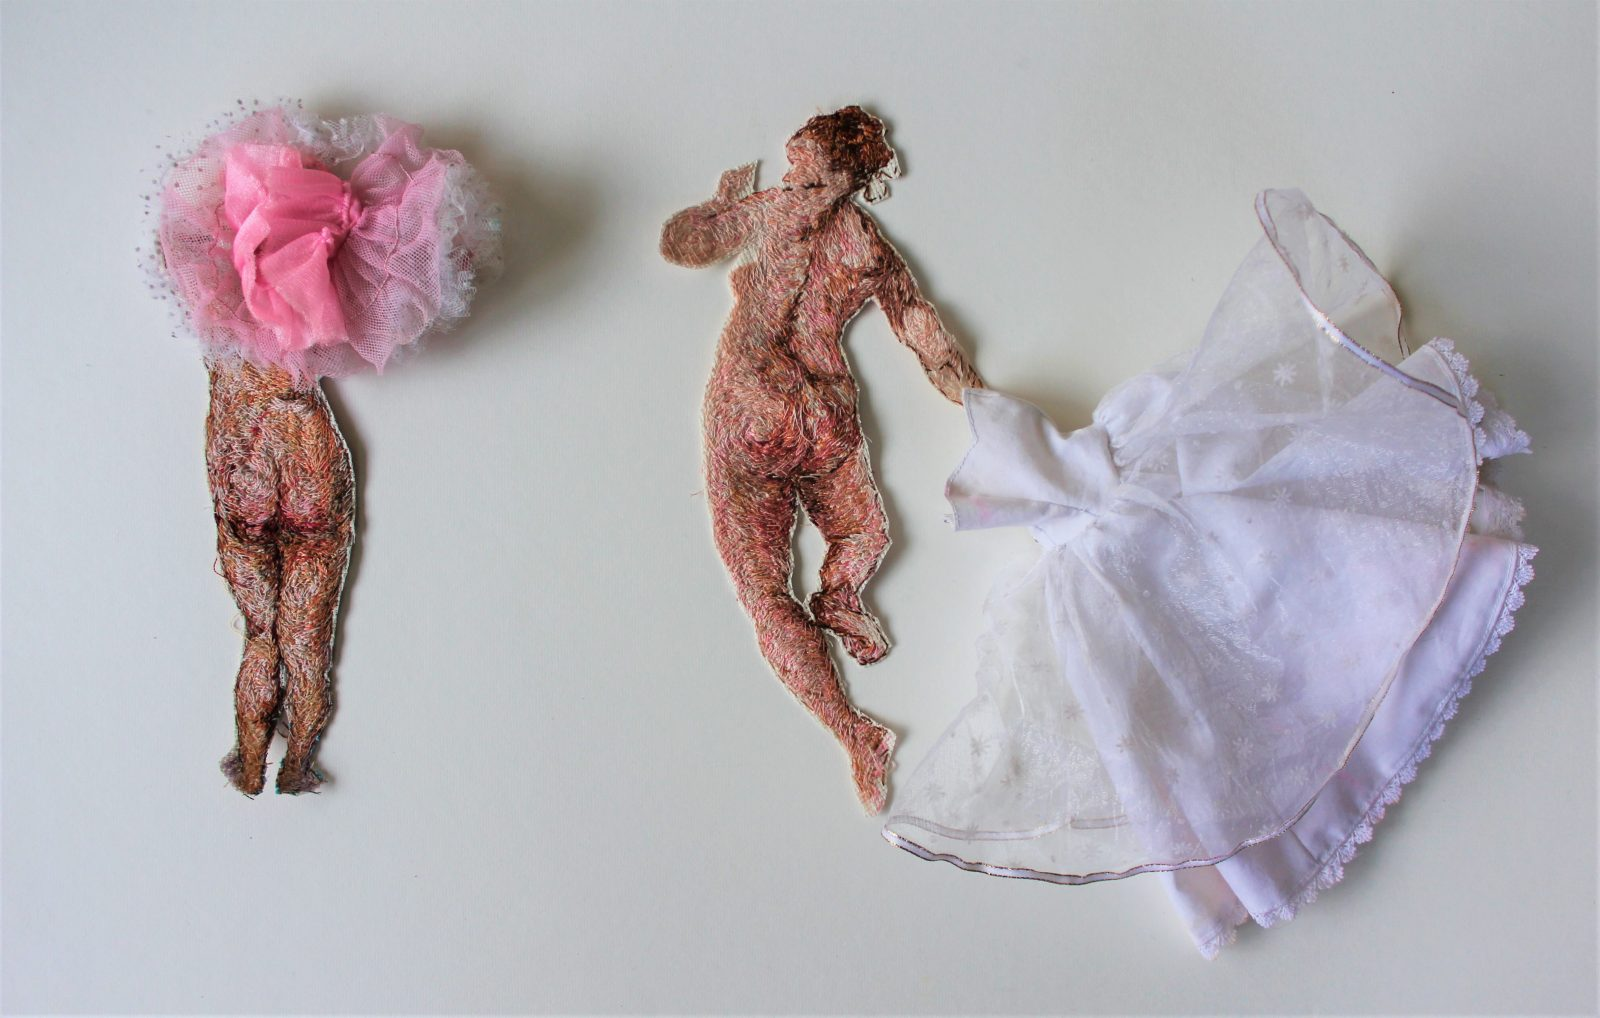 Image: Naomi Zouwer, Unbridled - after Reubens and Boucher, embroidery floss and vintage dolls clothes, 2019.